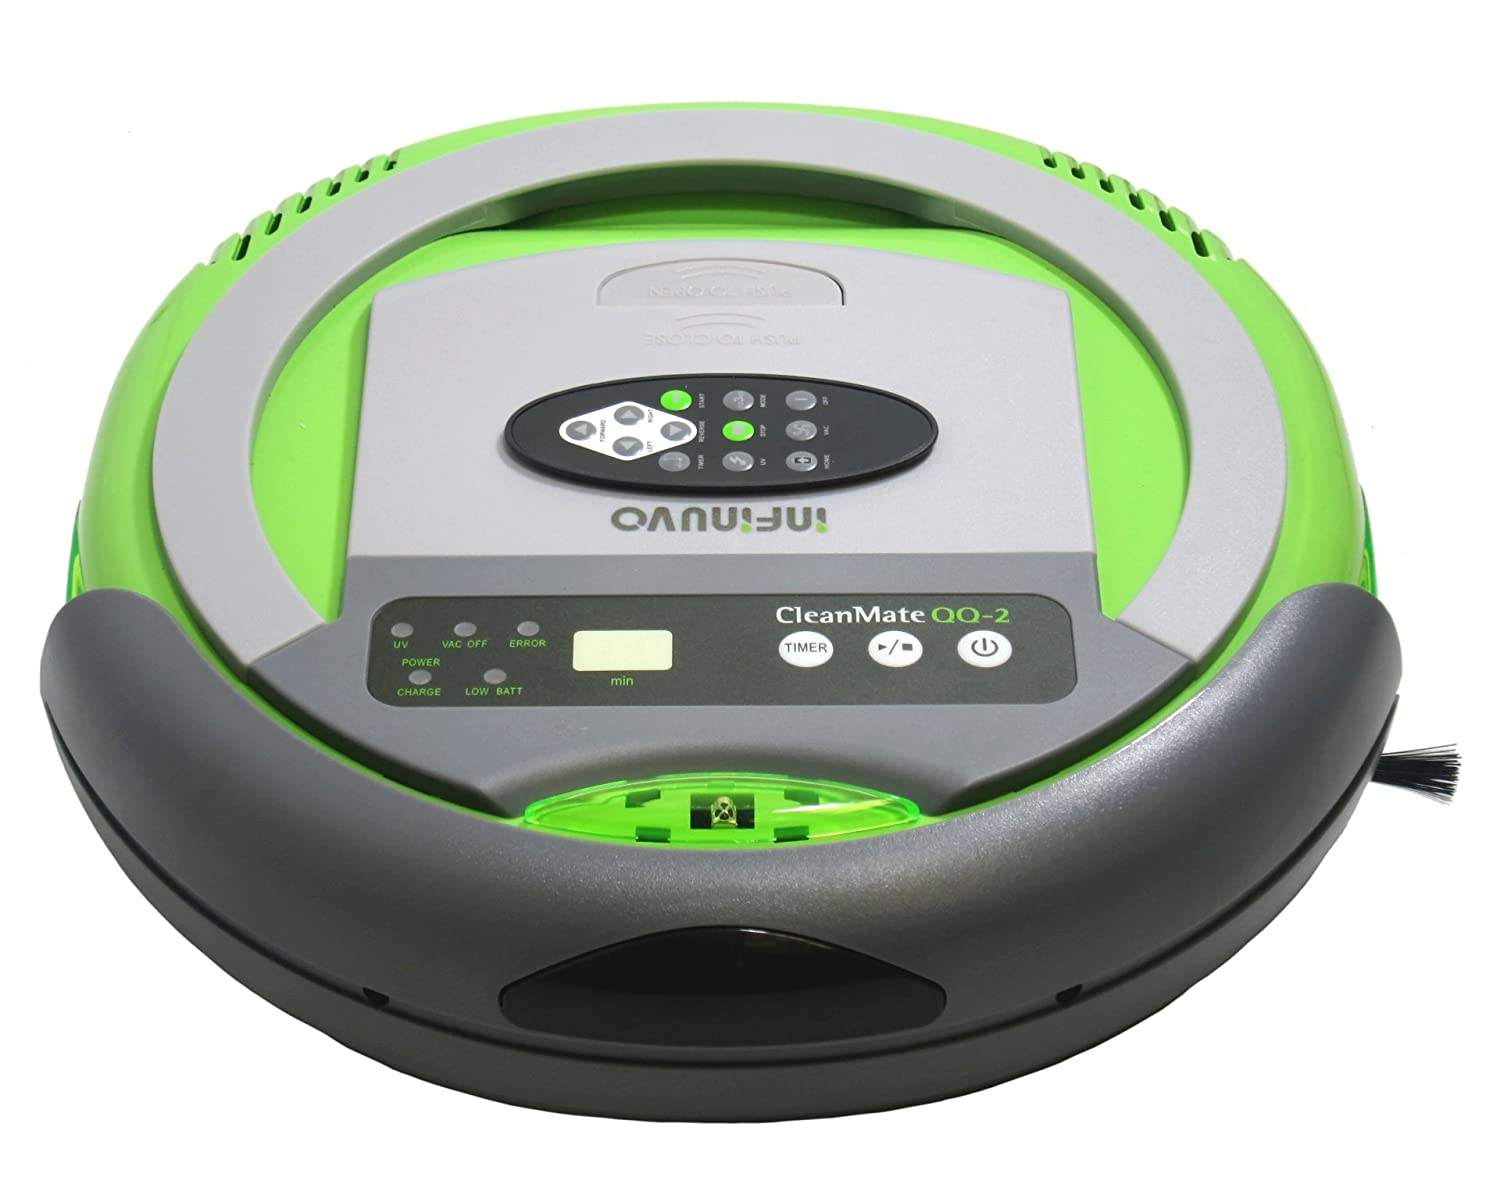 Amazon.com: Infinuvo Cleanmate Robotic Vacuum Cleaner - Model QQ-2 Green: Health & Personal Care